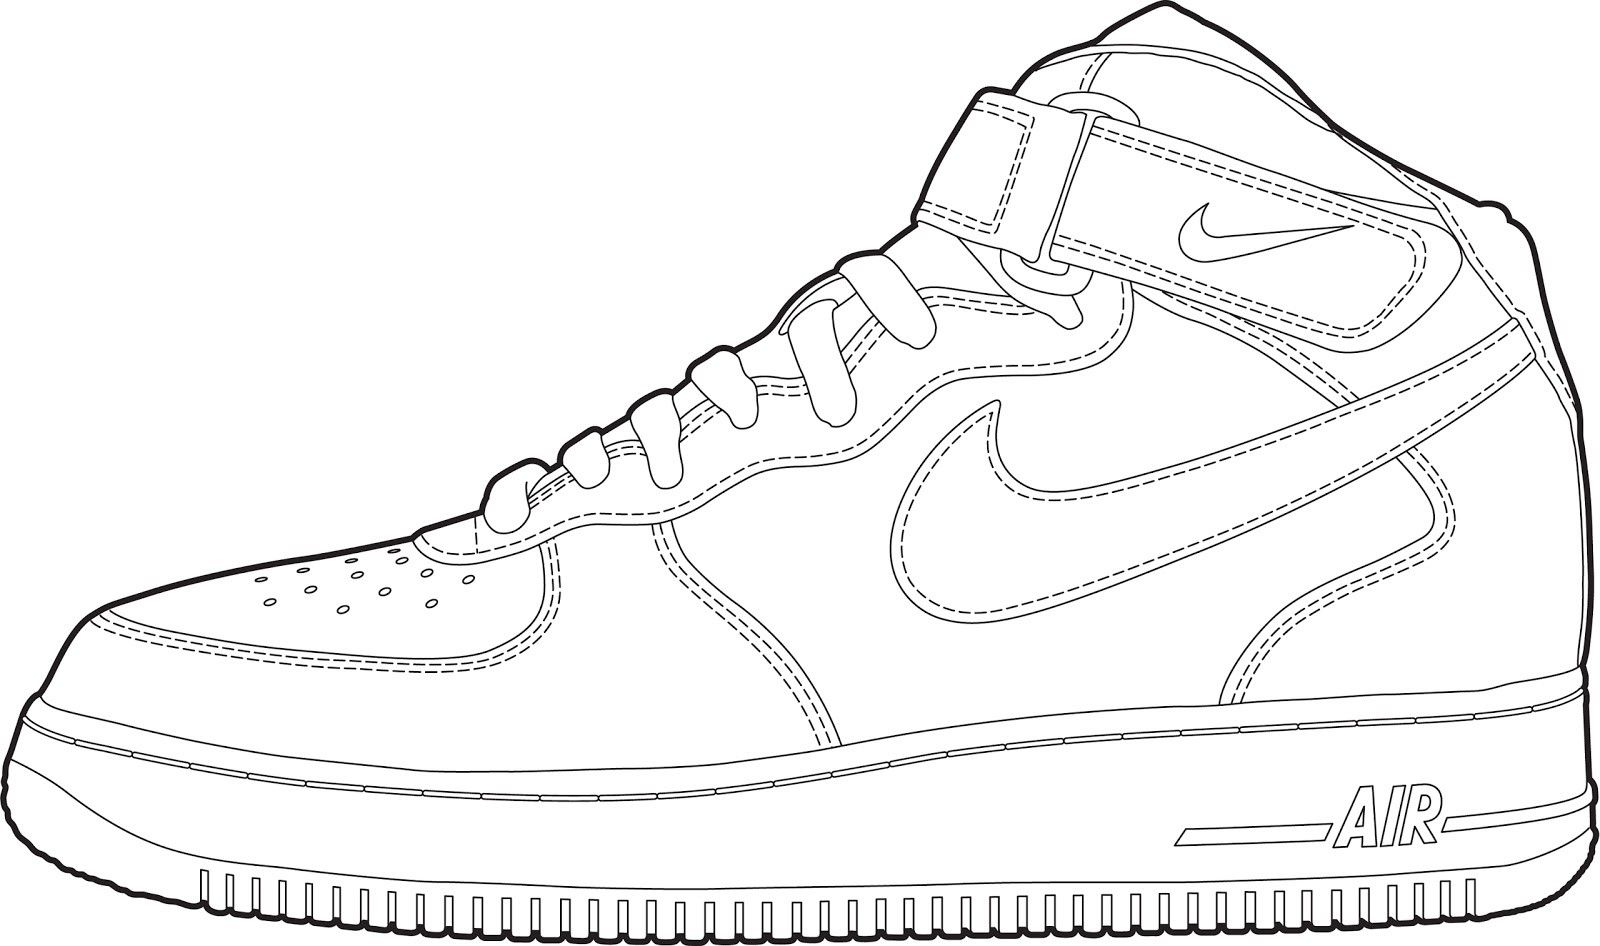 Air Jordan Coloring Pages Shoes New Drawn Sneakers Coloring Page Pencil And In Color Drawn Sneakers Of Air J Sneakers Sketch Pictures Of Shoes Sneakers Drawing